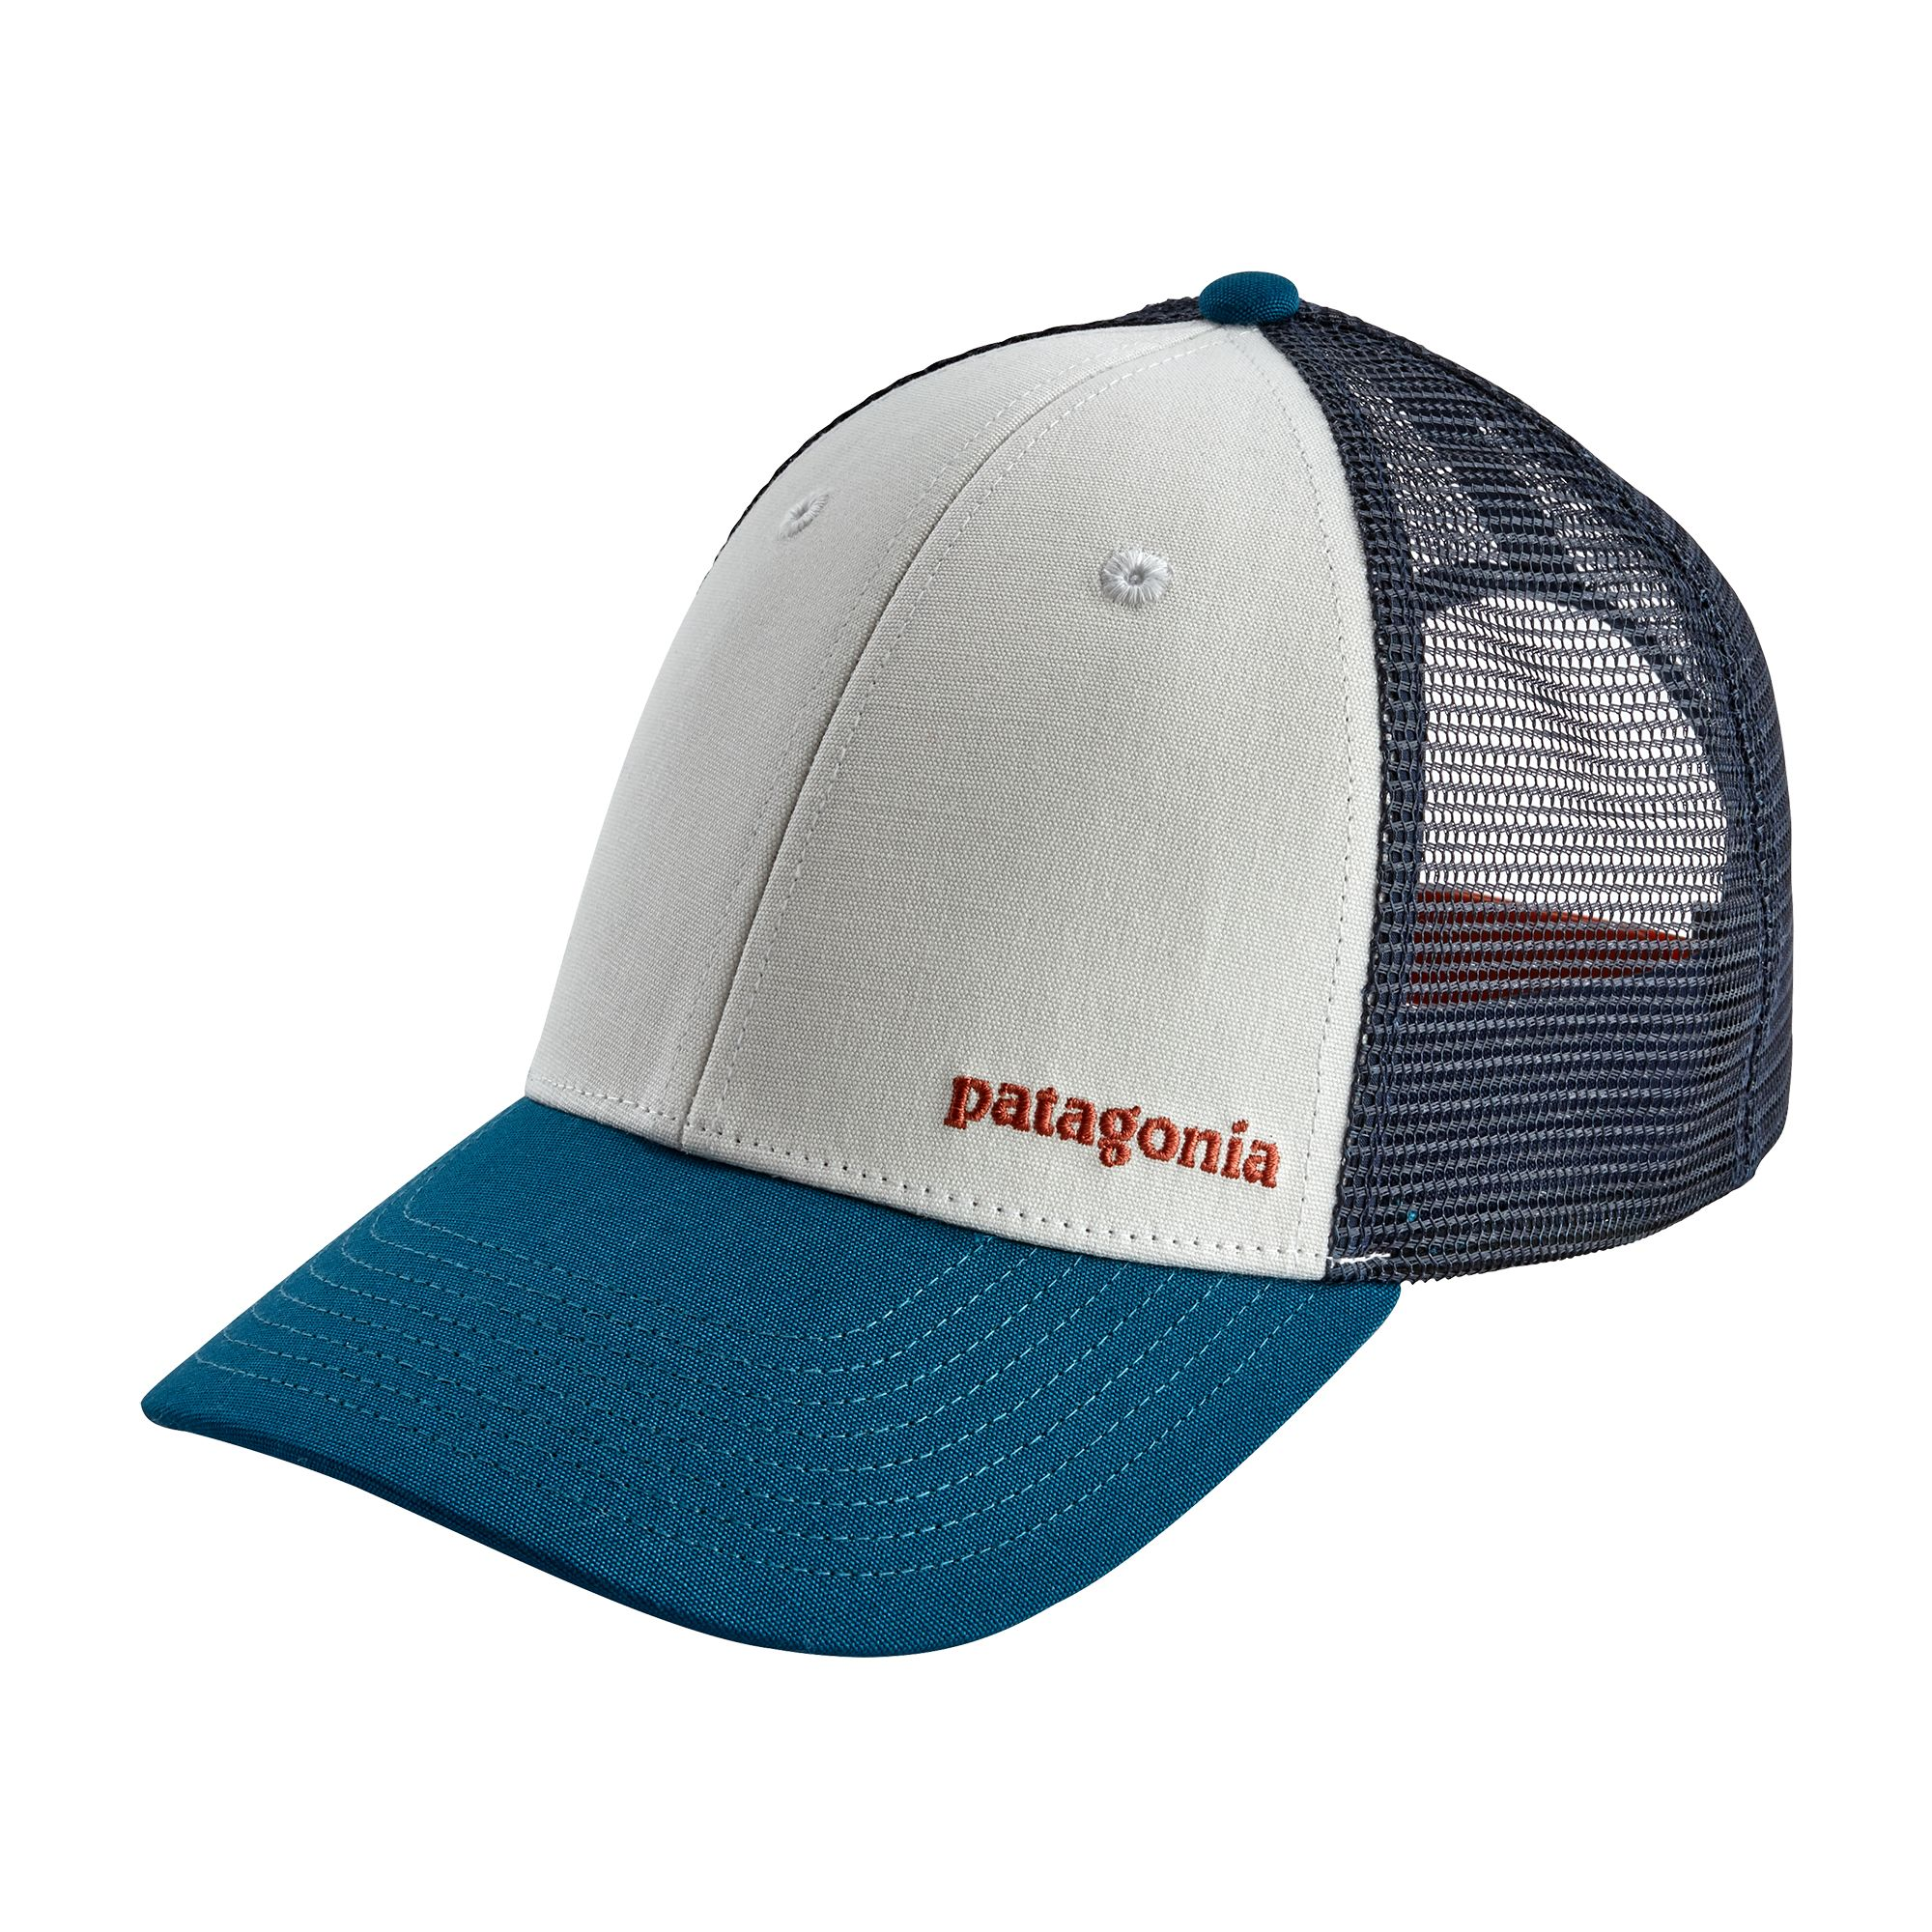 Patagonia- Small Text Logo LoPro Trucker Hat